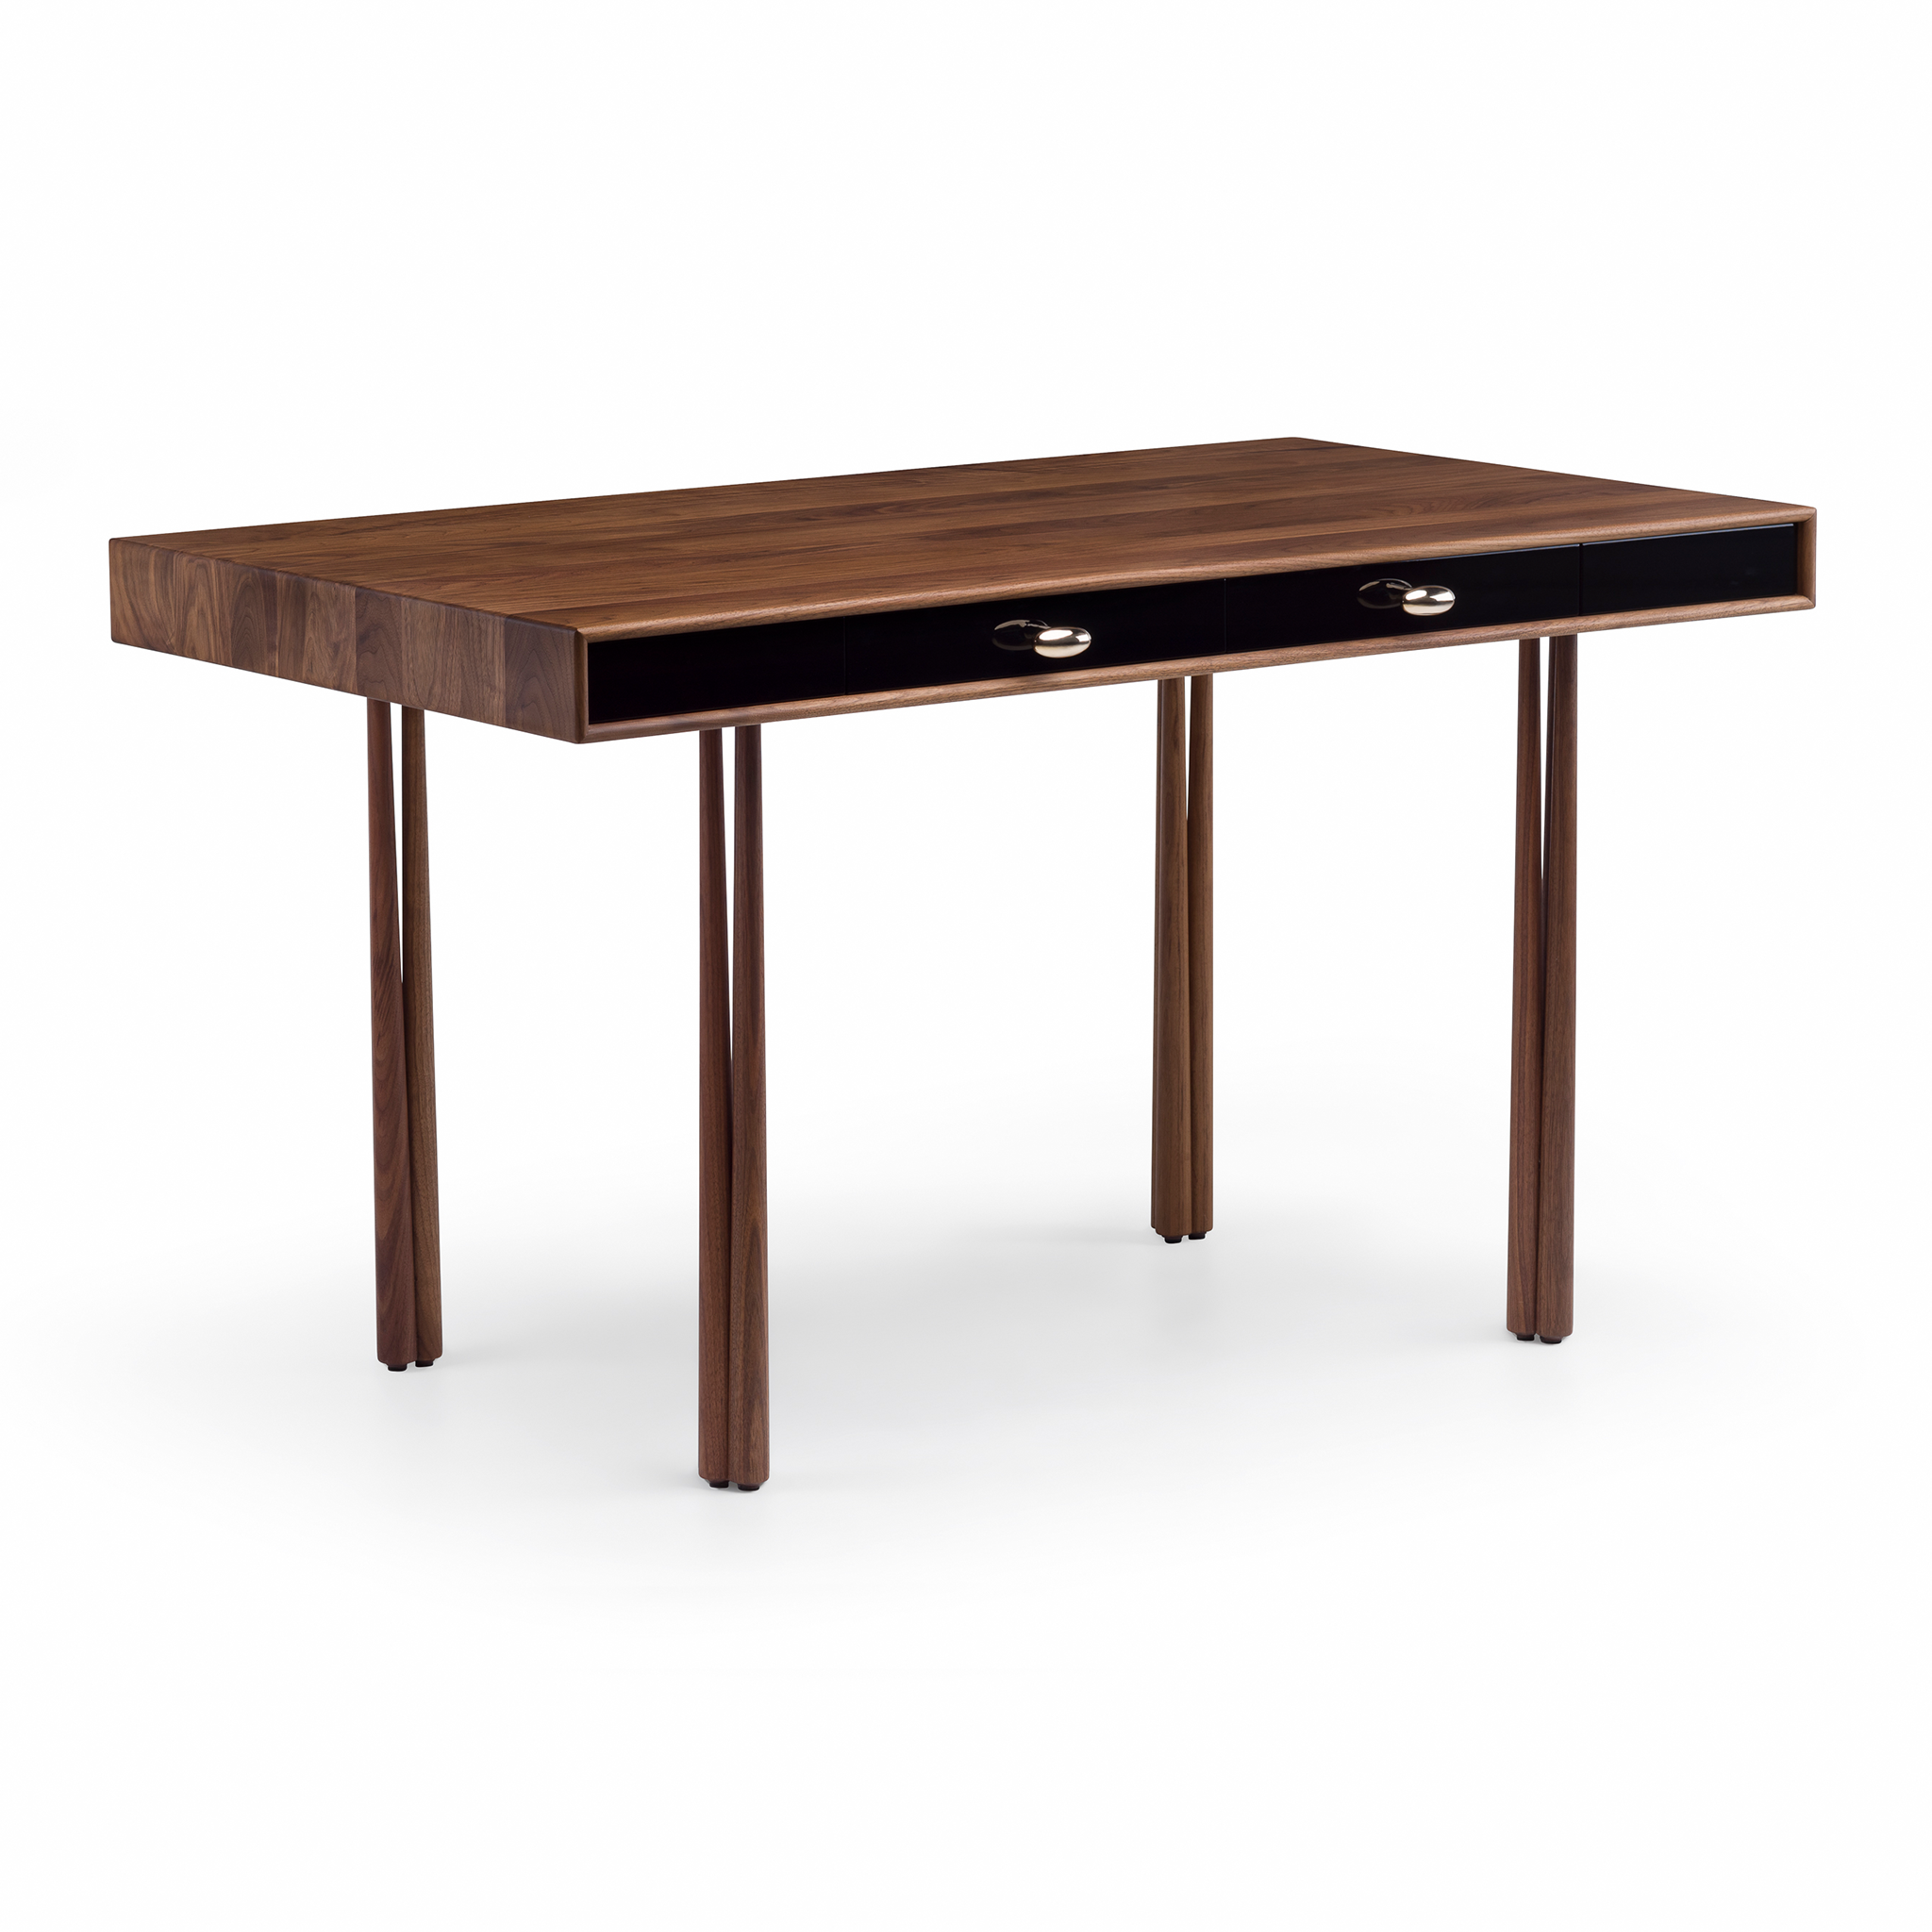 Elliot Desk / Dressing Table by De La Espada